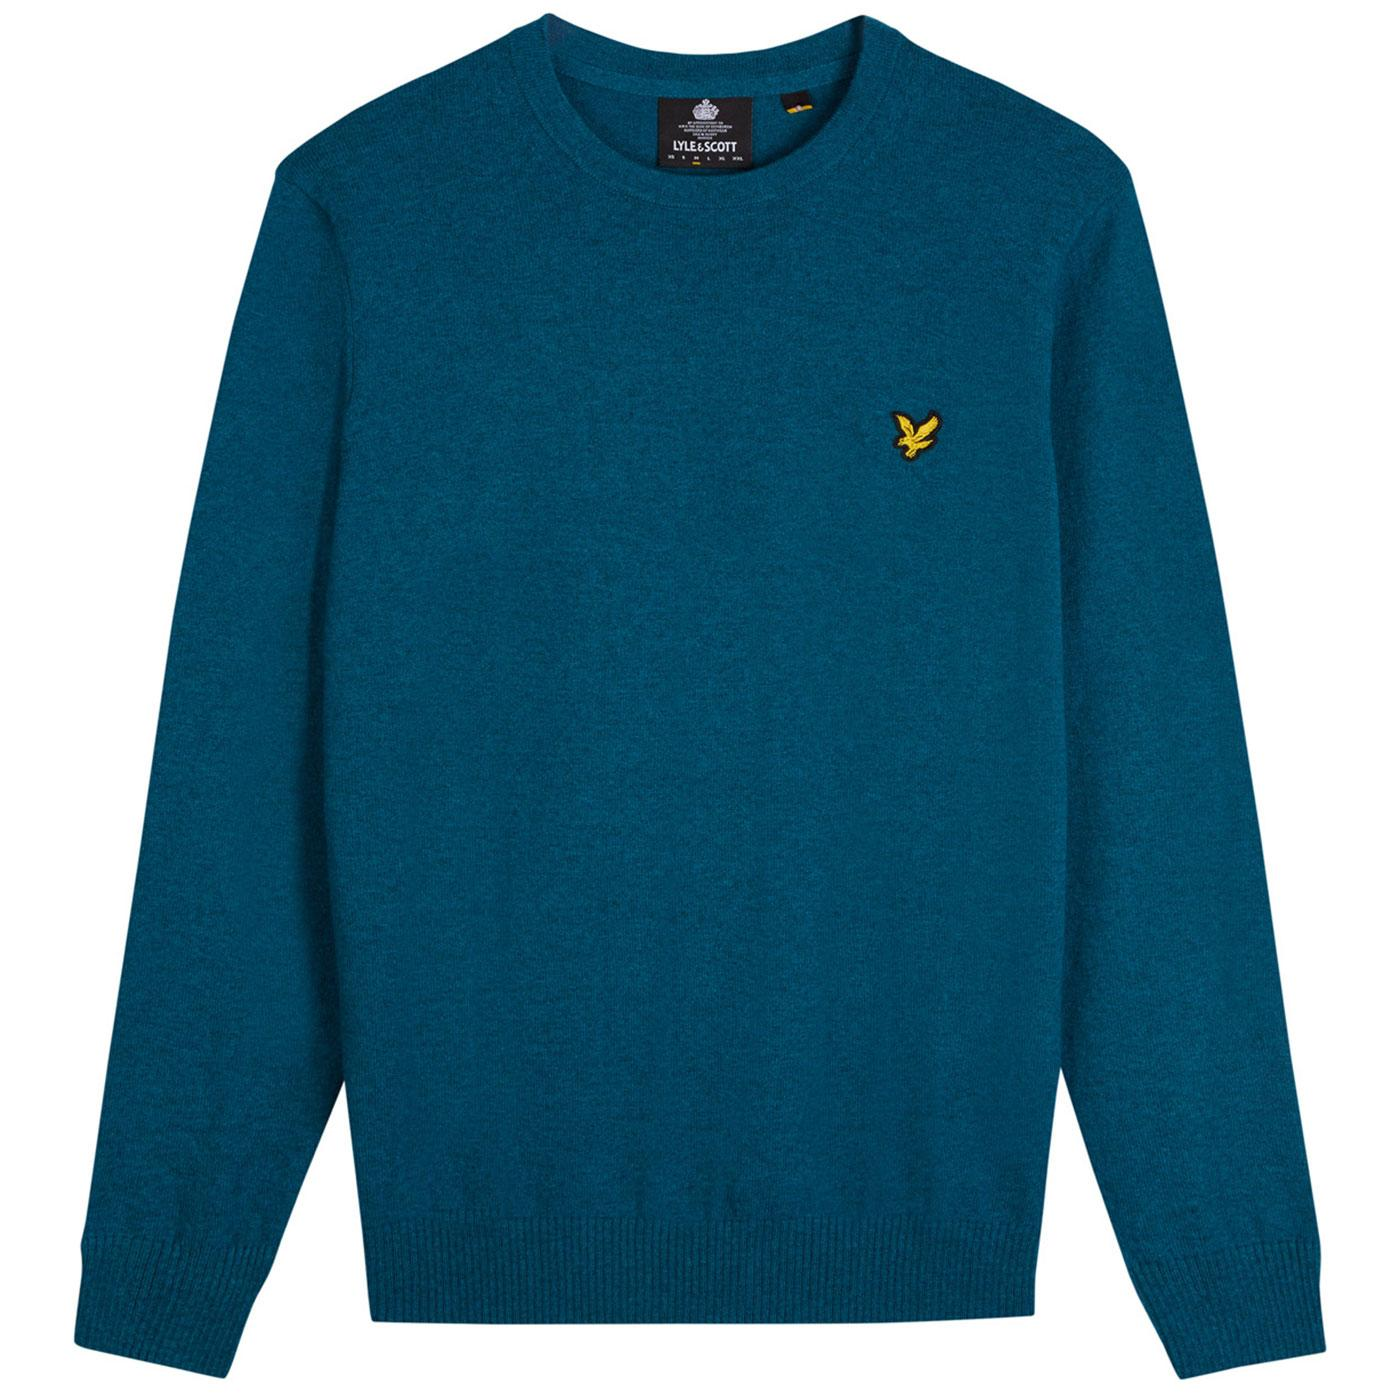 LYLE AND SCOTT Retro Merino Wool Knitted Jumper PT